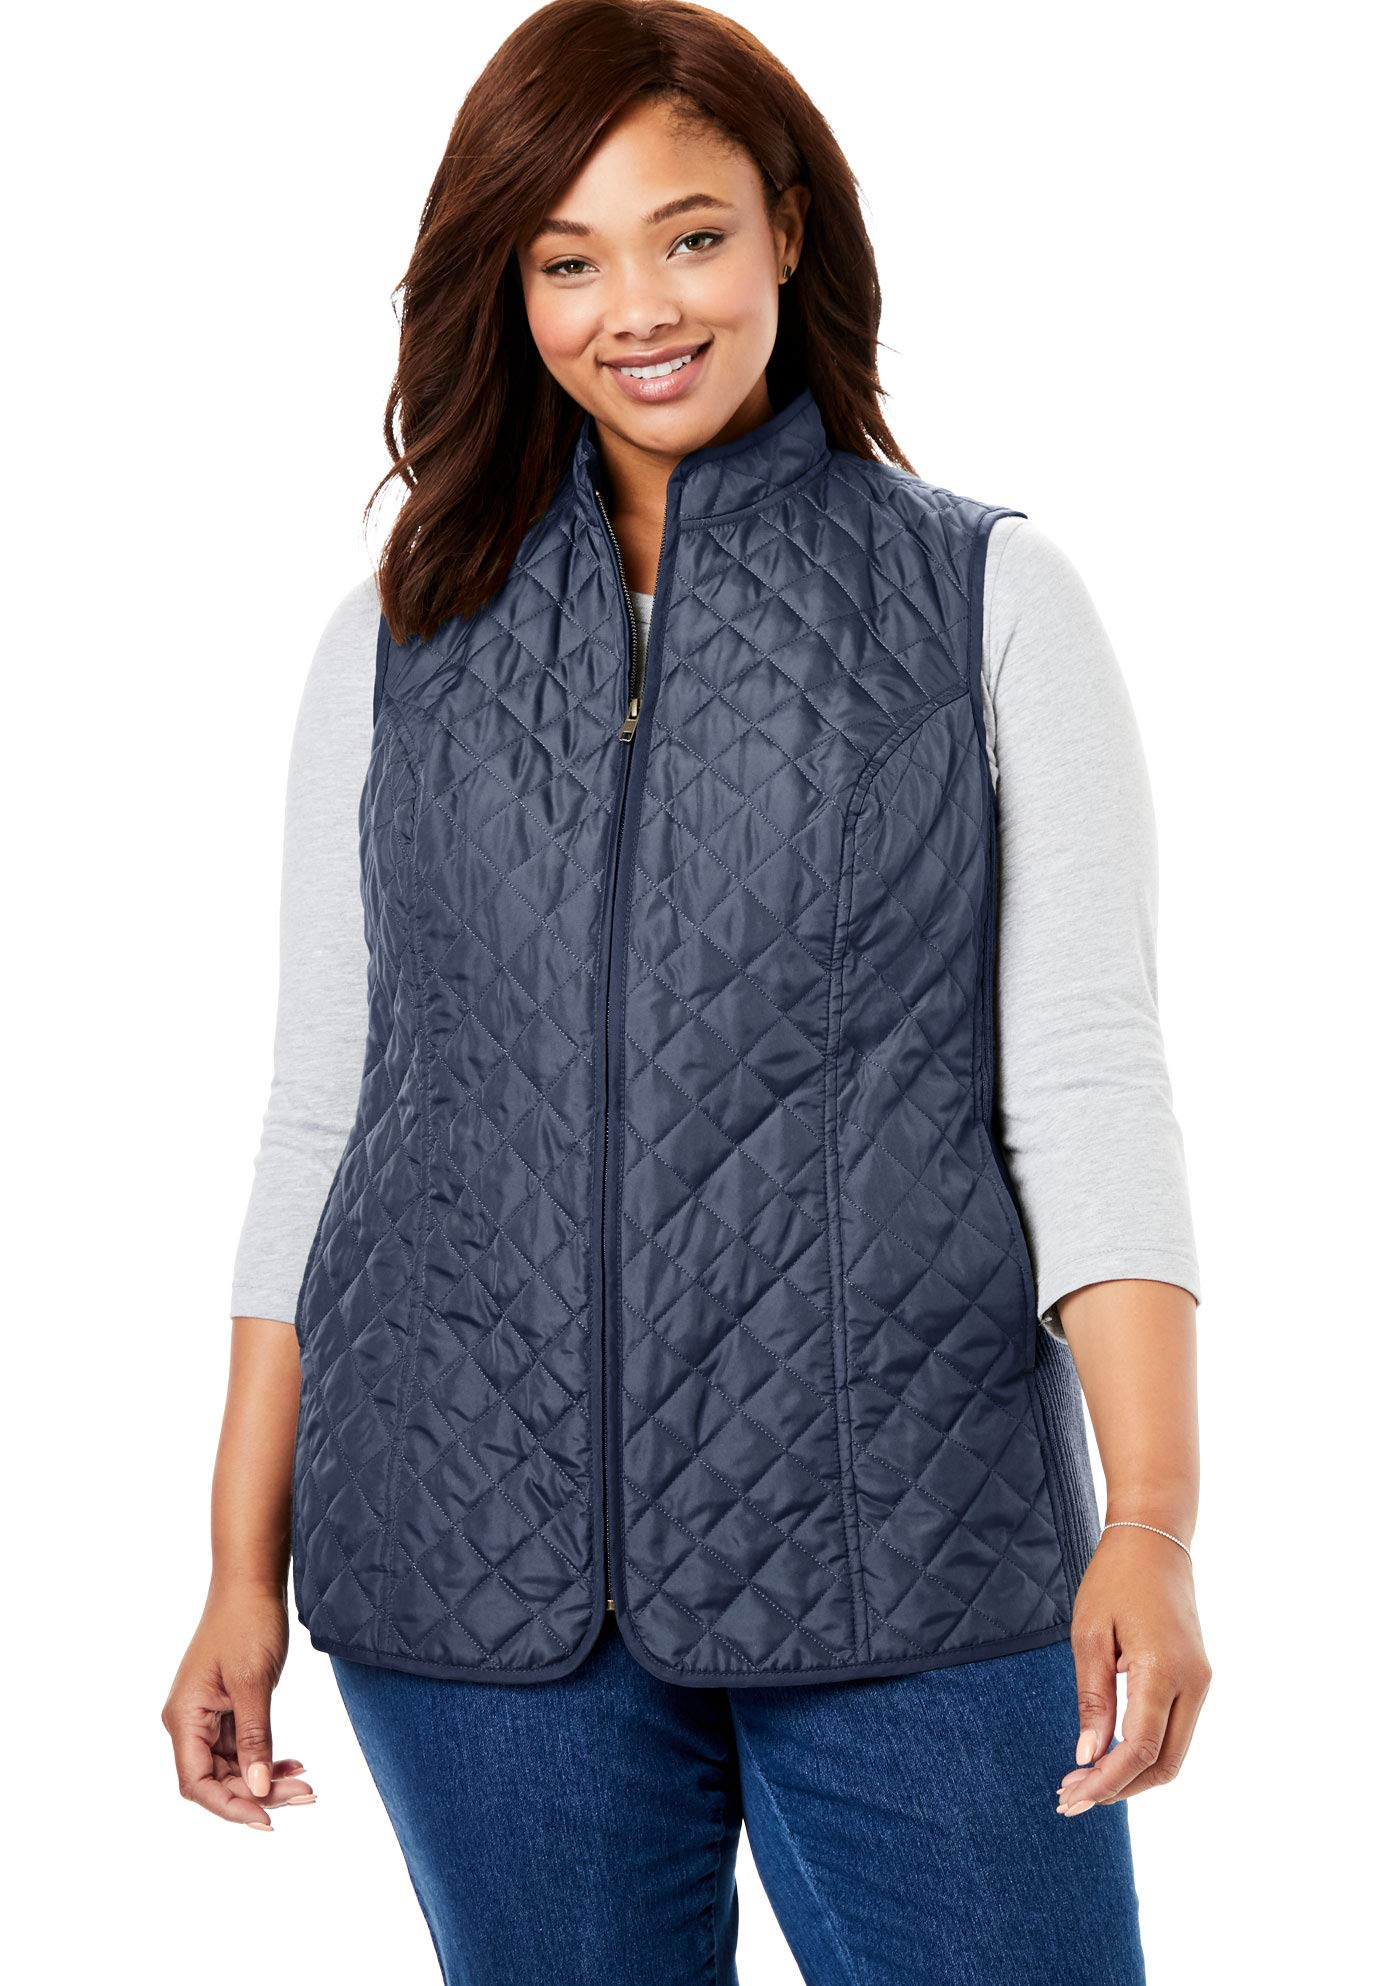 Woman Within Women's Plus Size Zip-Front Quilted Vest - Navy, M by Woman Within